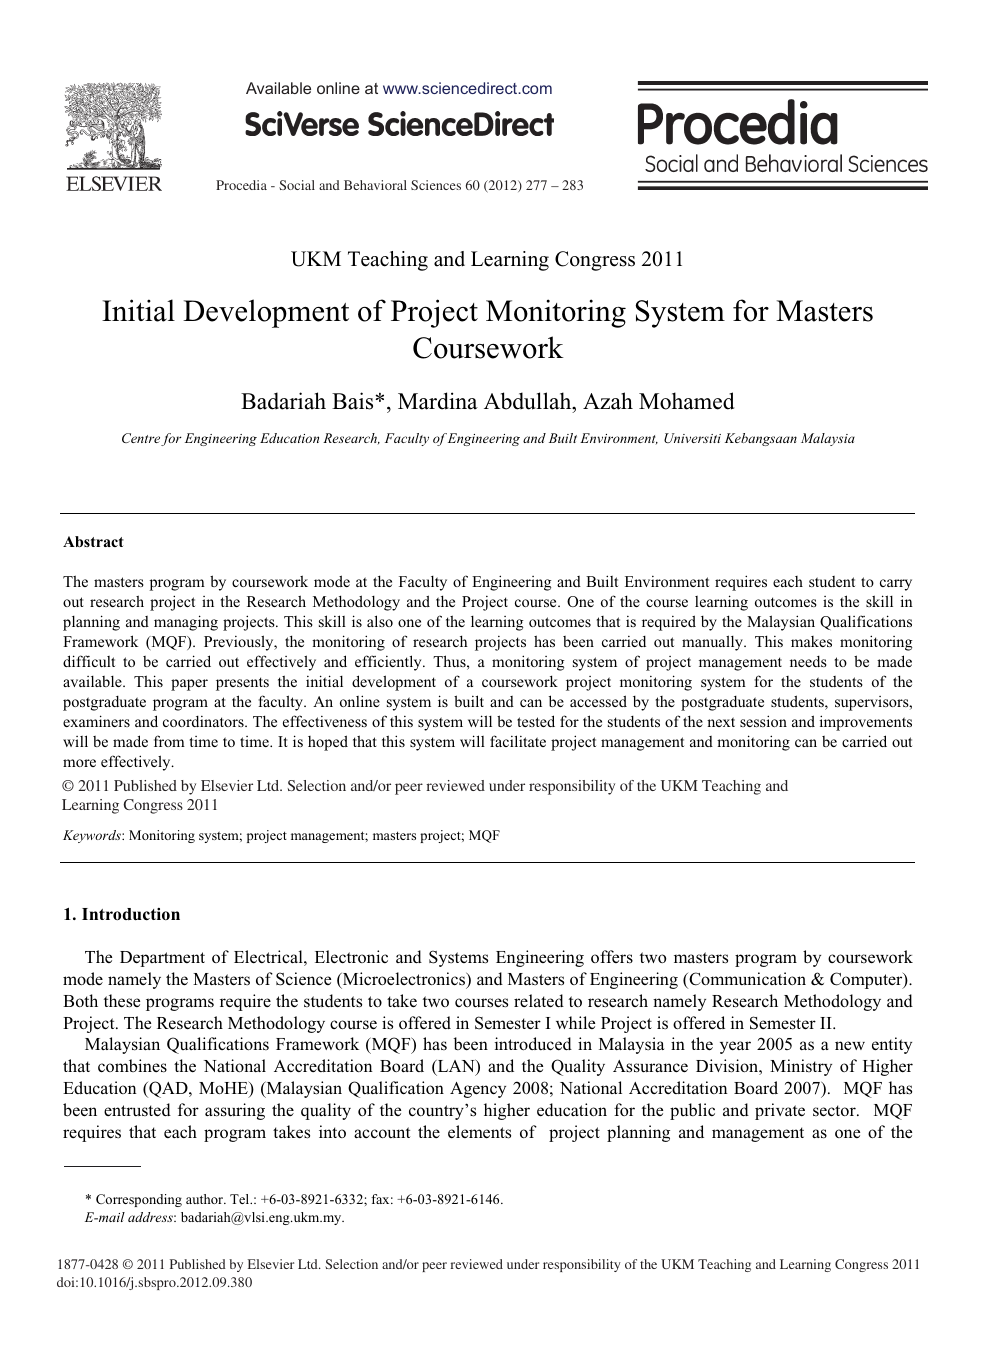 Initial Development of Project Monitoring System for Masters